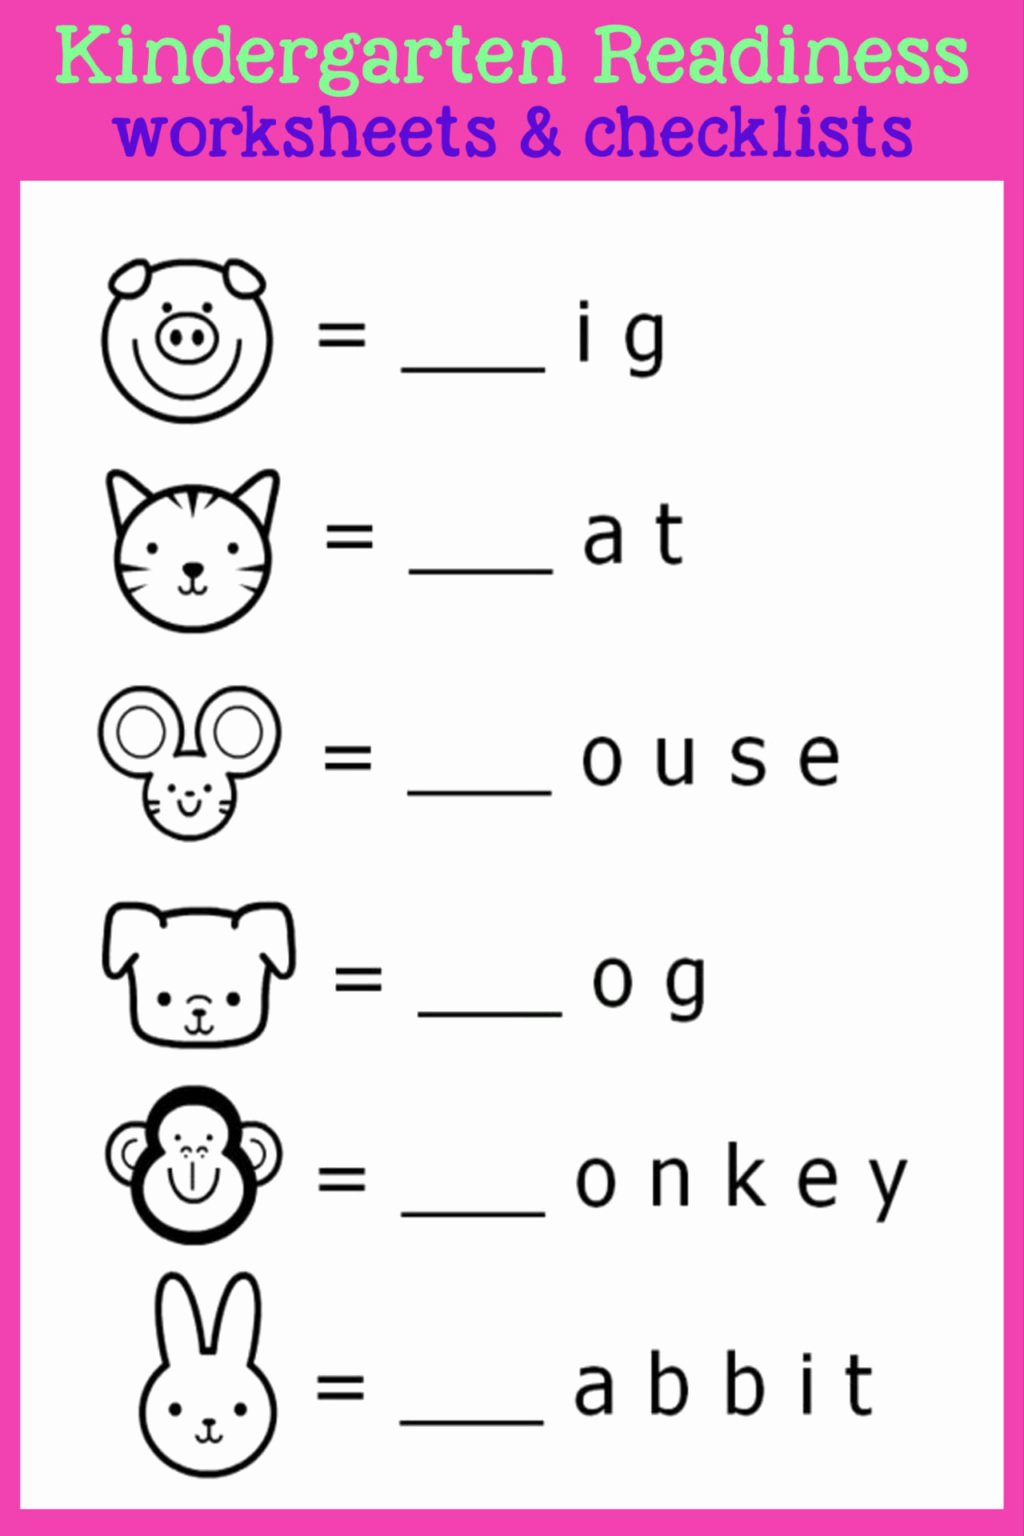 Free Printable Educational Worksheets for Preschoolers Ideas Worksheet Worksheet Kindergarten Readiness Activities